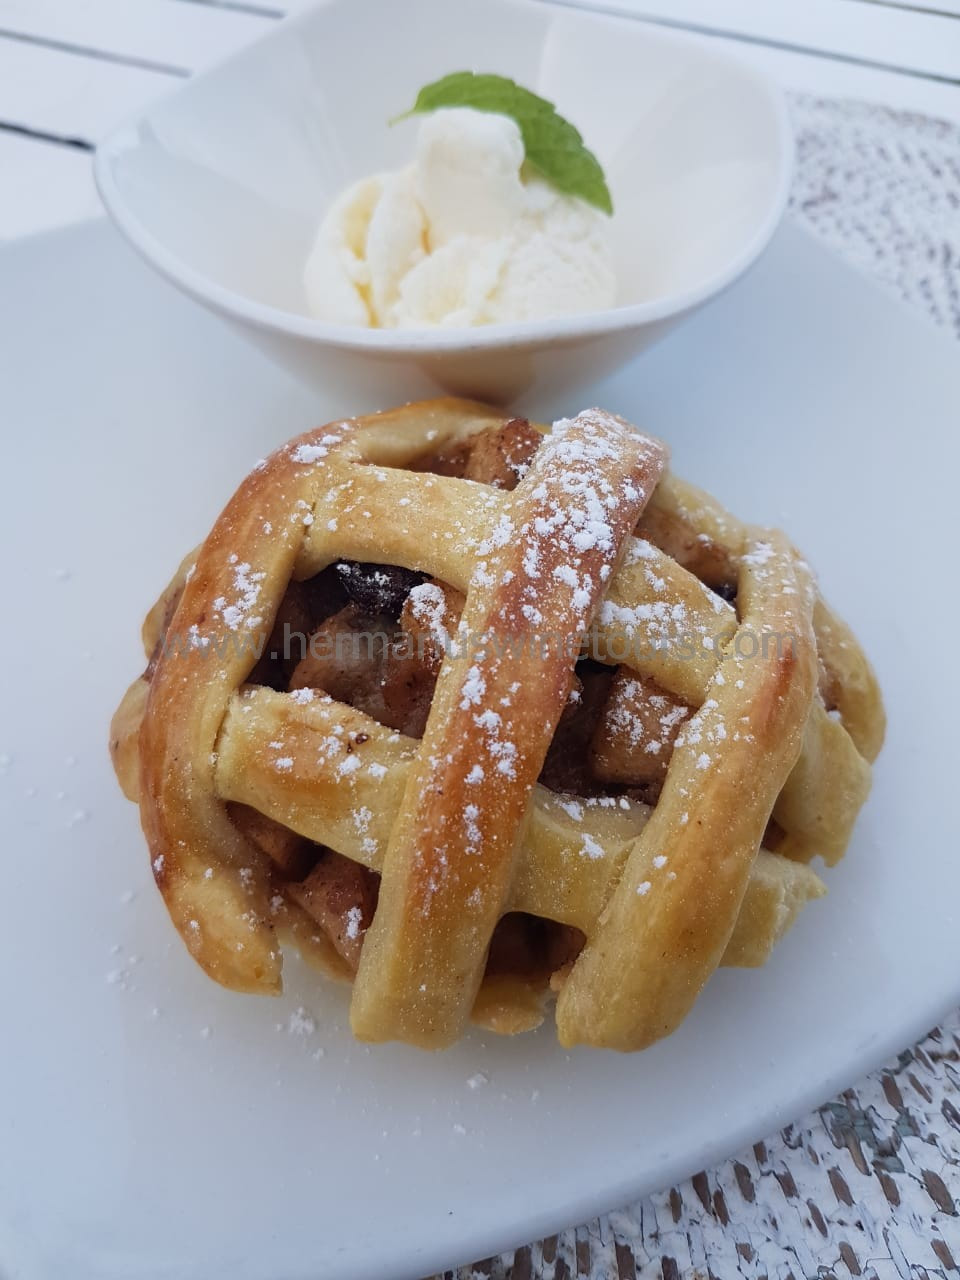 Apple and raisin tart, Hermanus restaurant, near Cape Town, South Africa